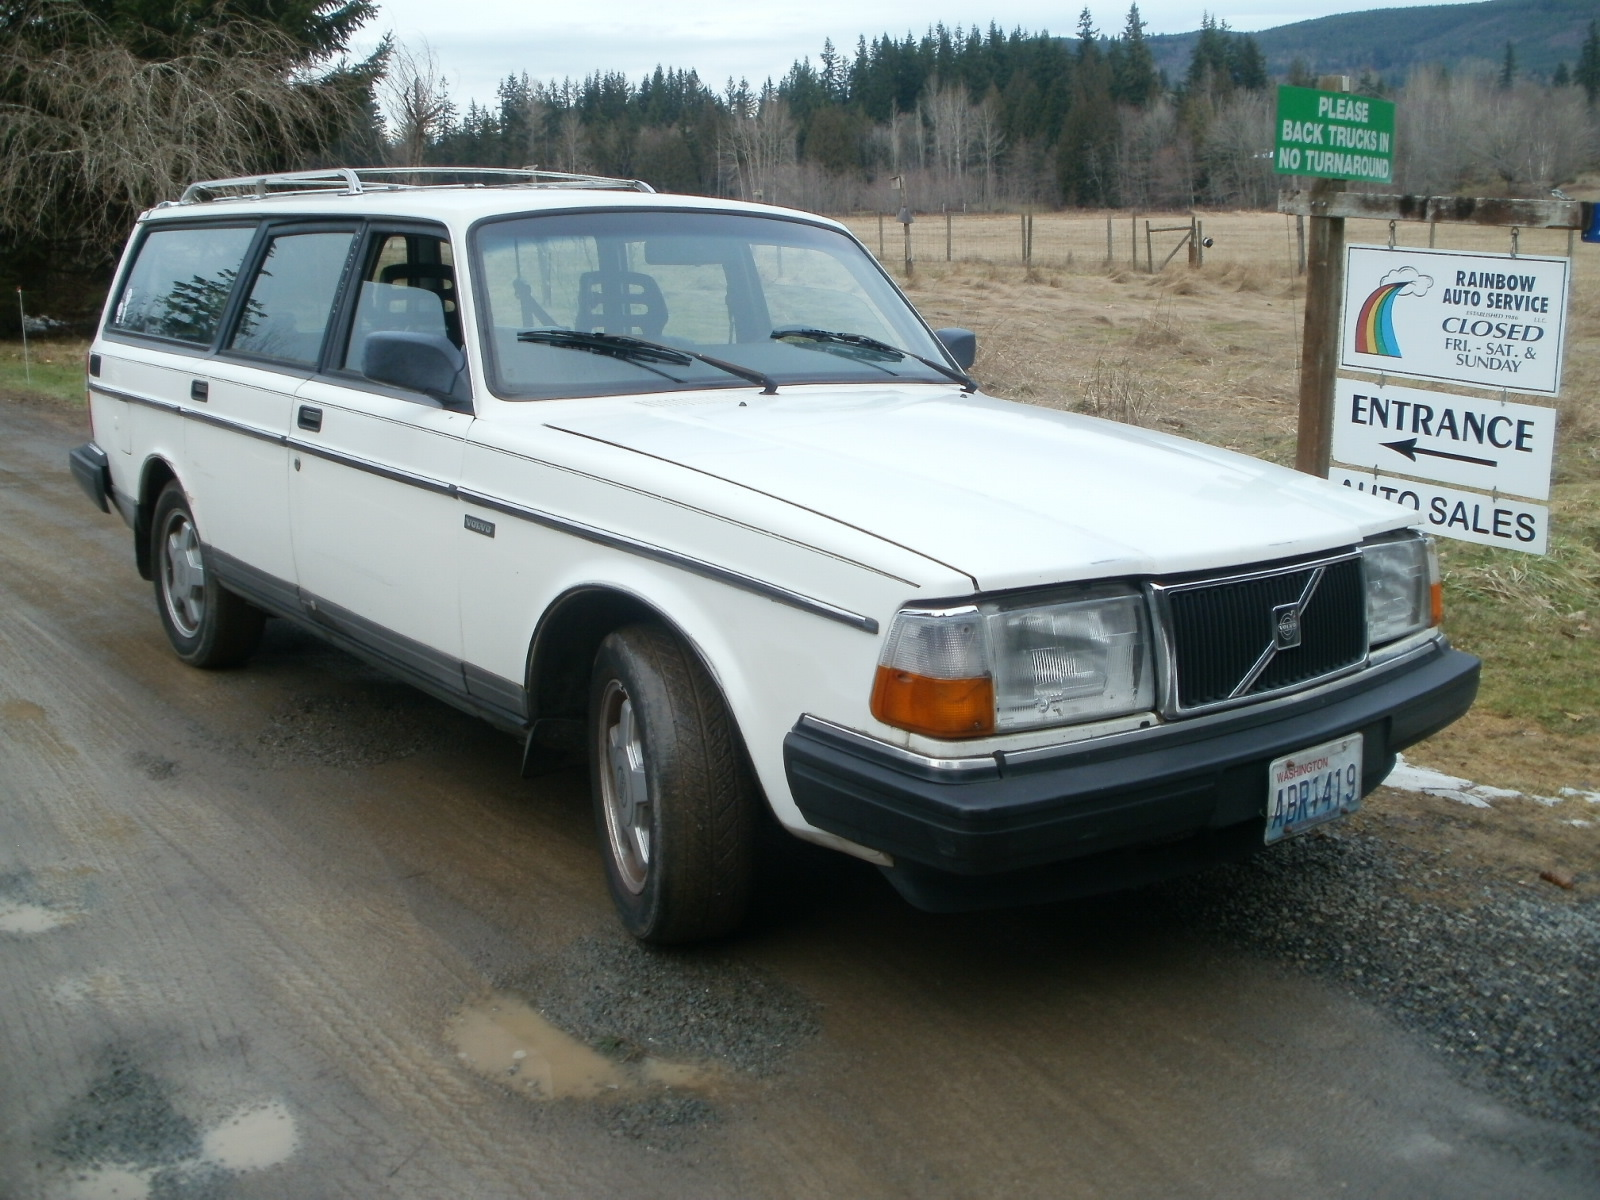 Used Volvos Are My Specialty – Rainbow Auto Service and Sales